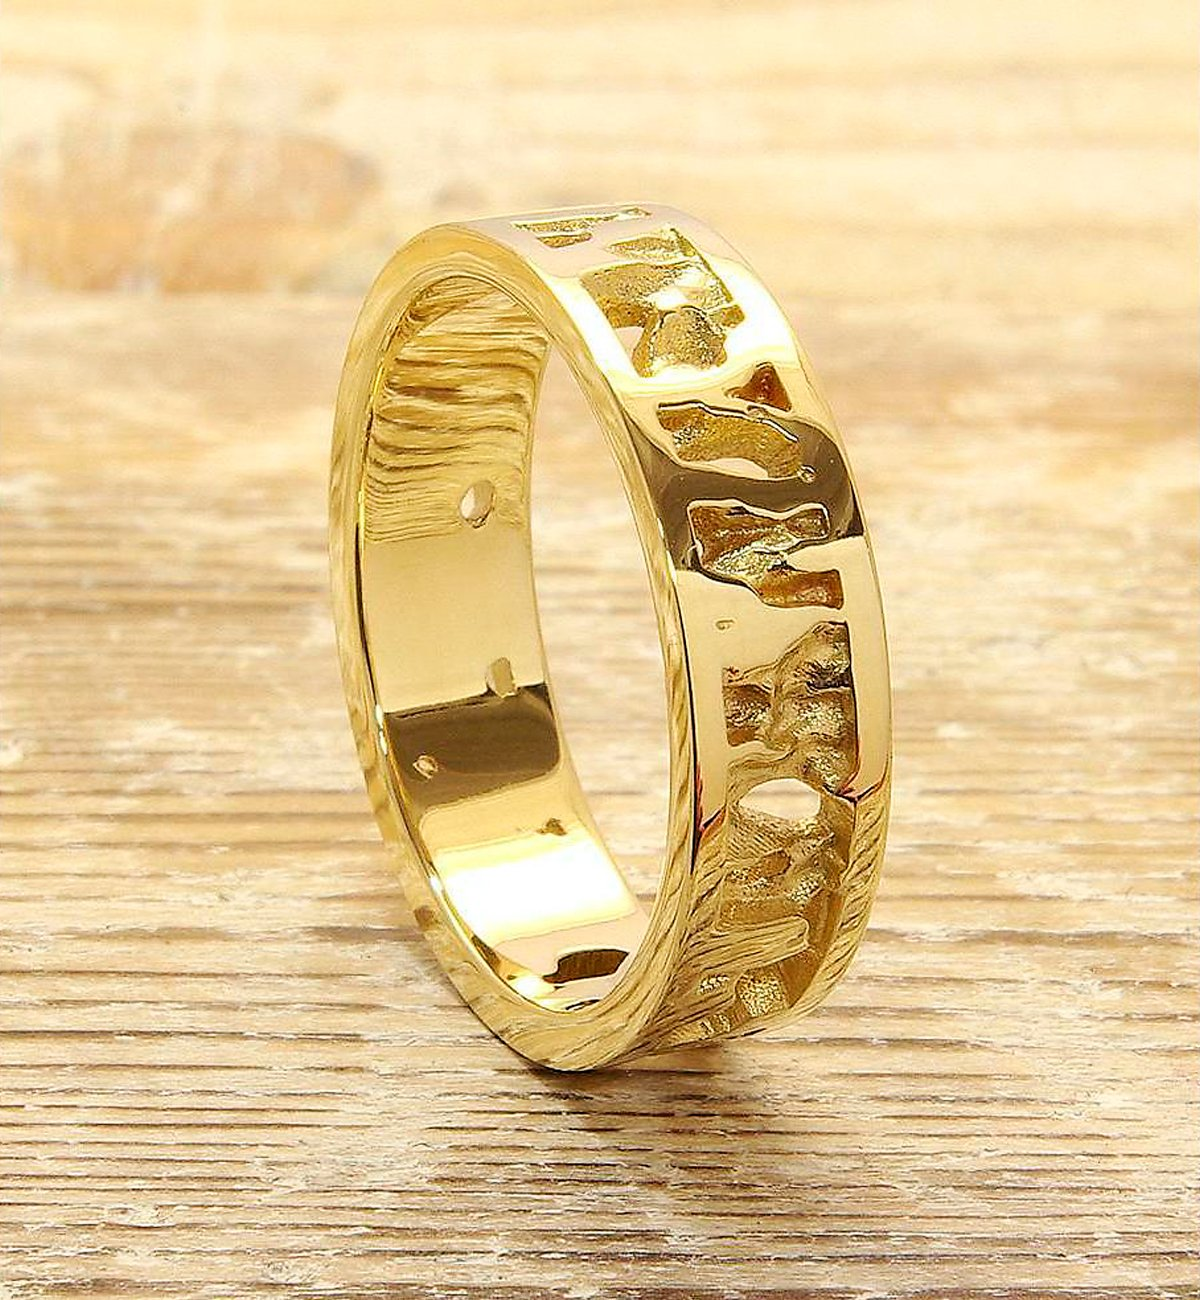 Cornish Seawater Textured 9kt Yellow Gold Nautical Handmade Wedding Ring